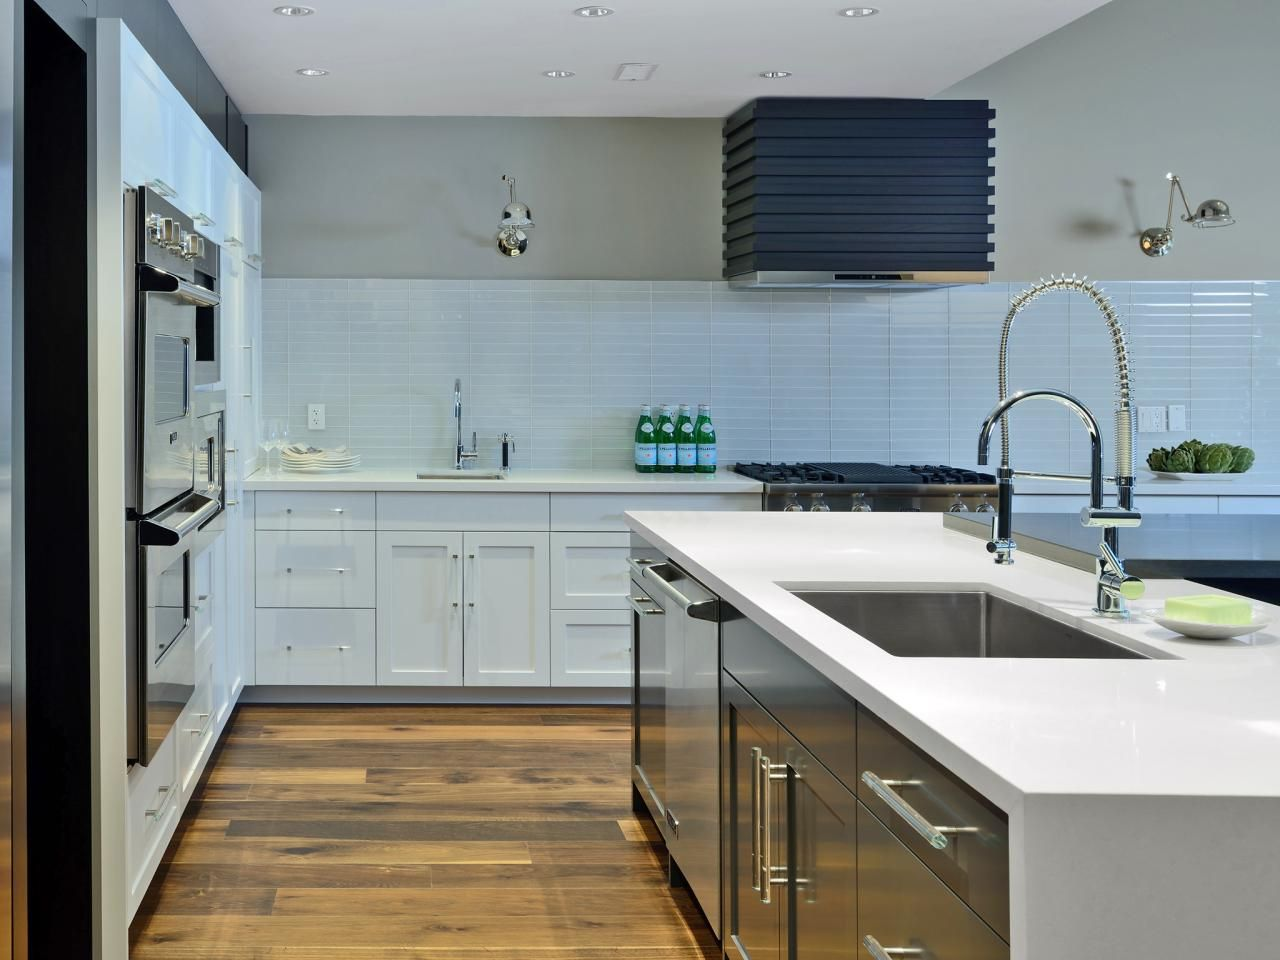 15+ Design Ideas for Kitchens Without Upper Cabinets | Kitchens ...